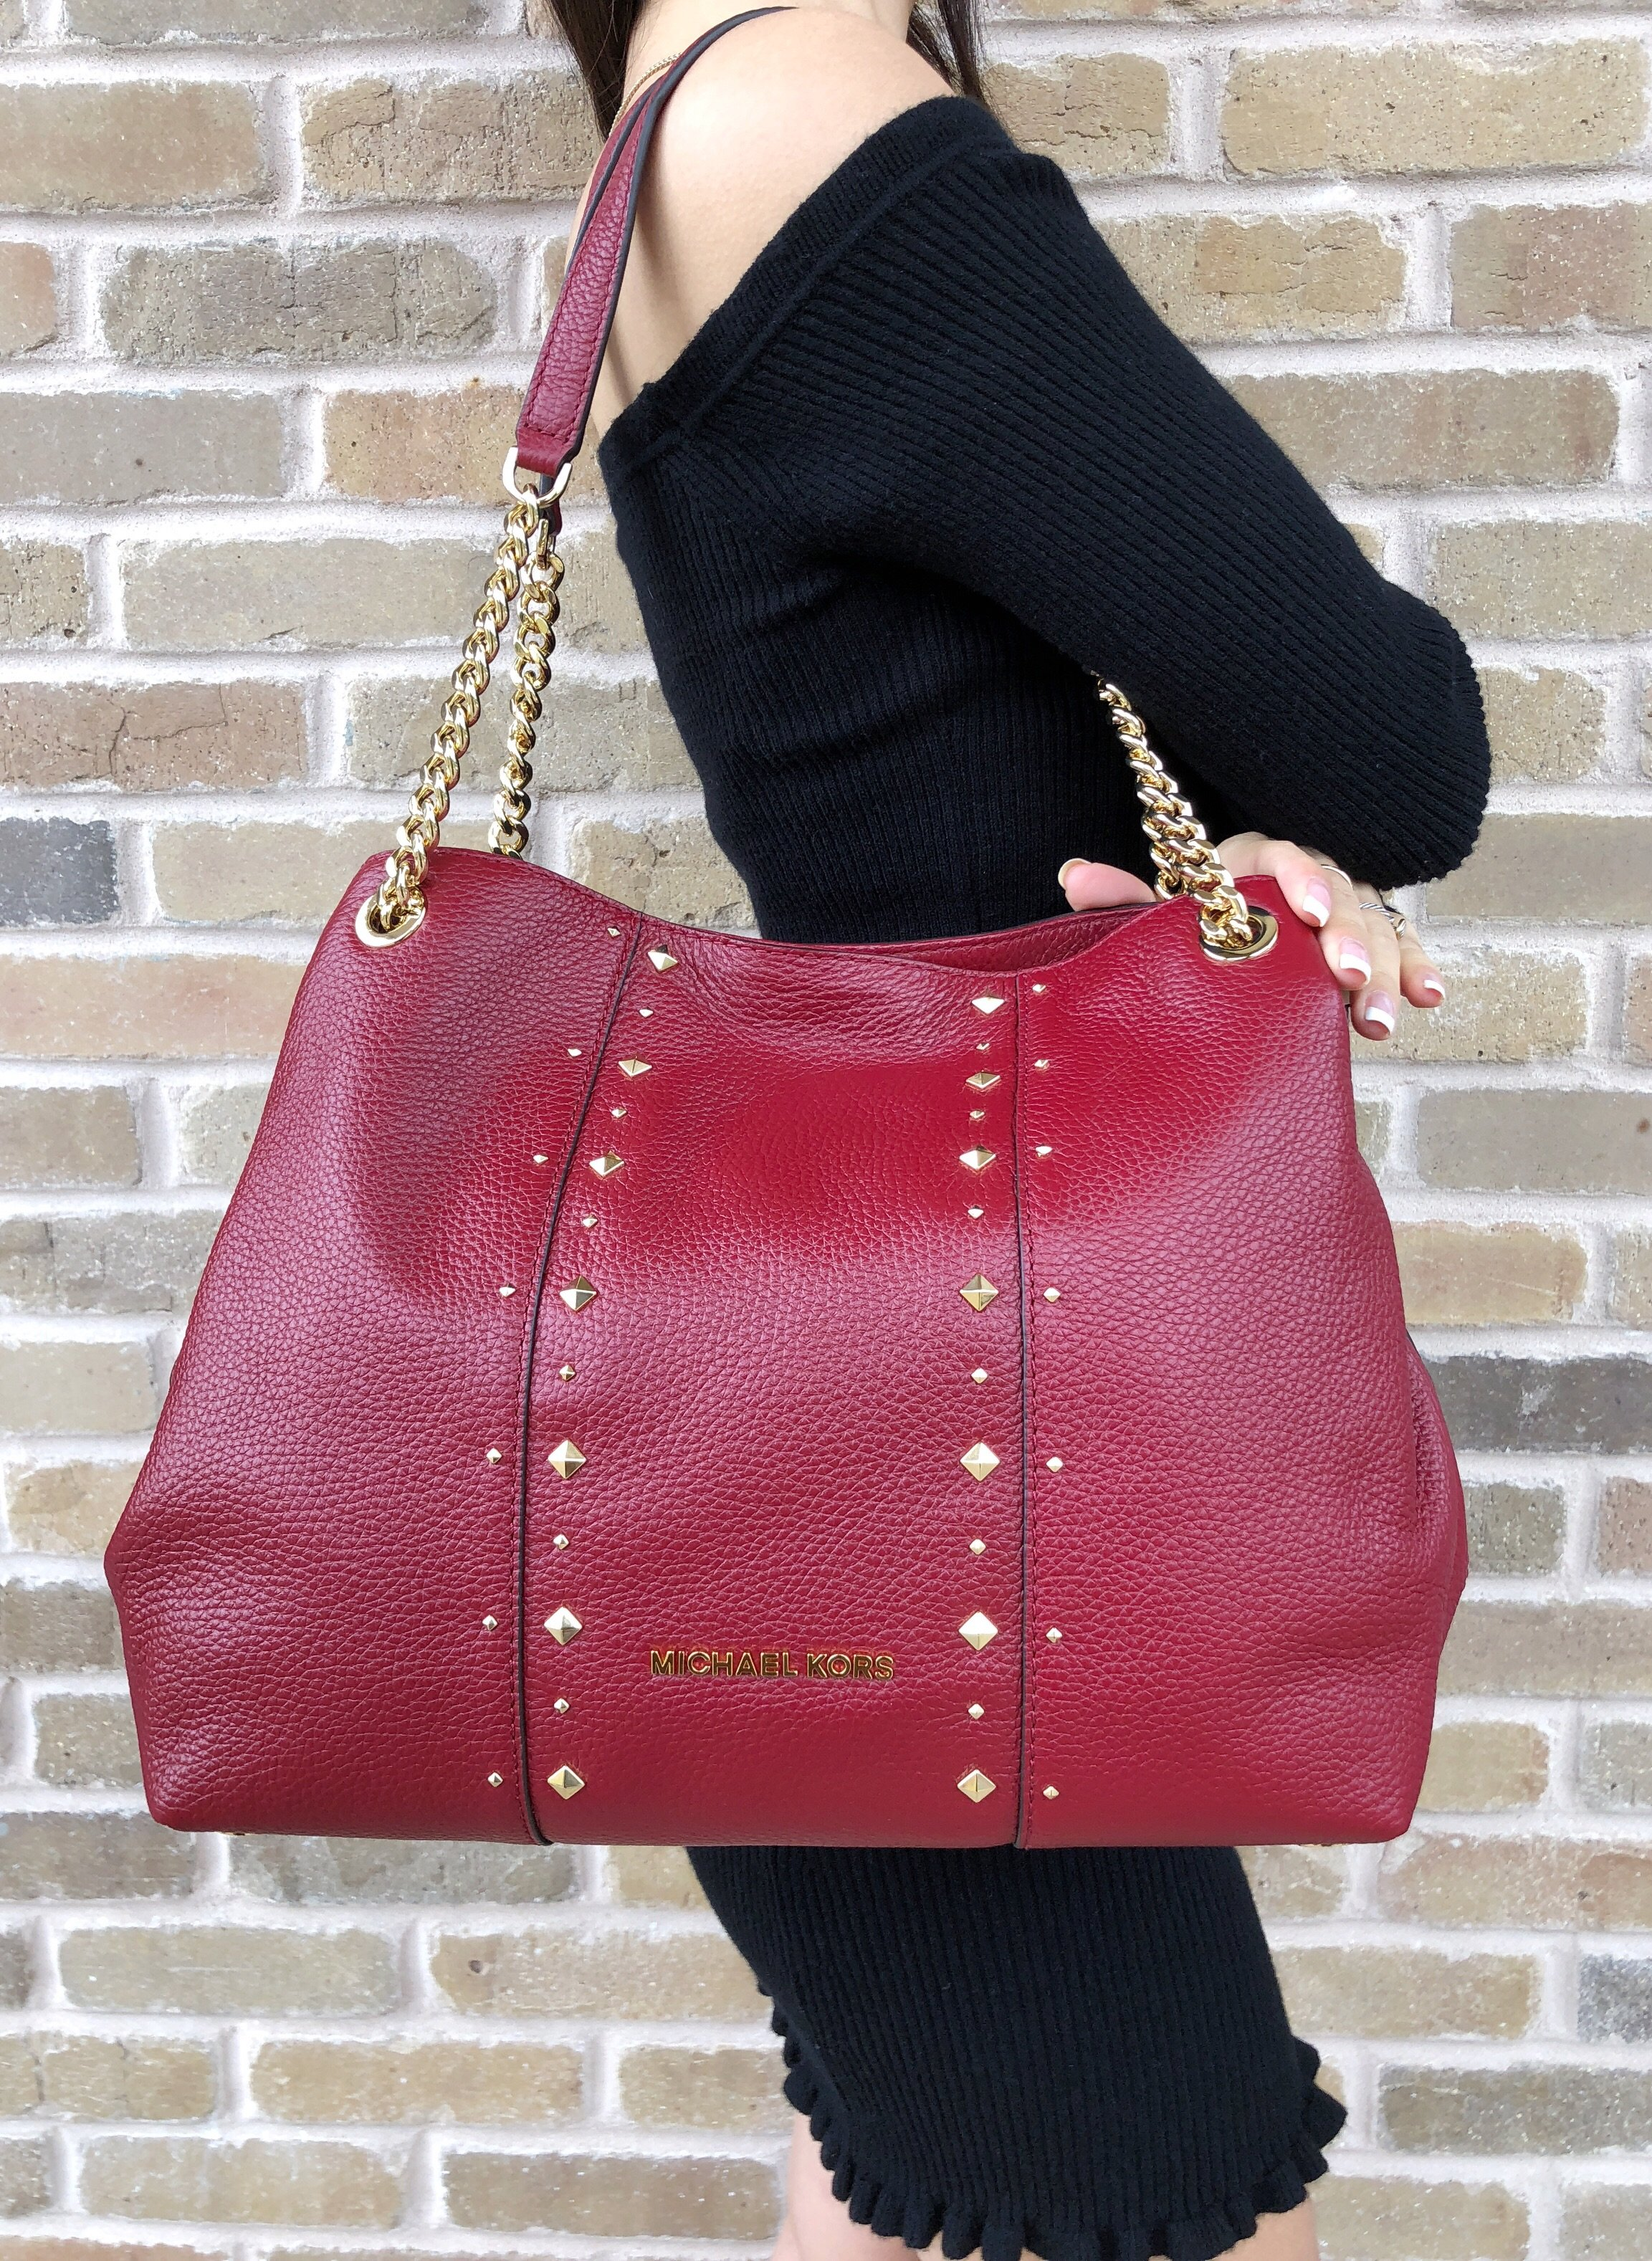 Michael Kors Jet Set Large Chain Shoulder Bag Hobo Small Travel Satchel Pink Tote Leather Cherry Red Stud